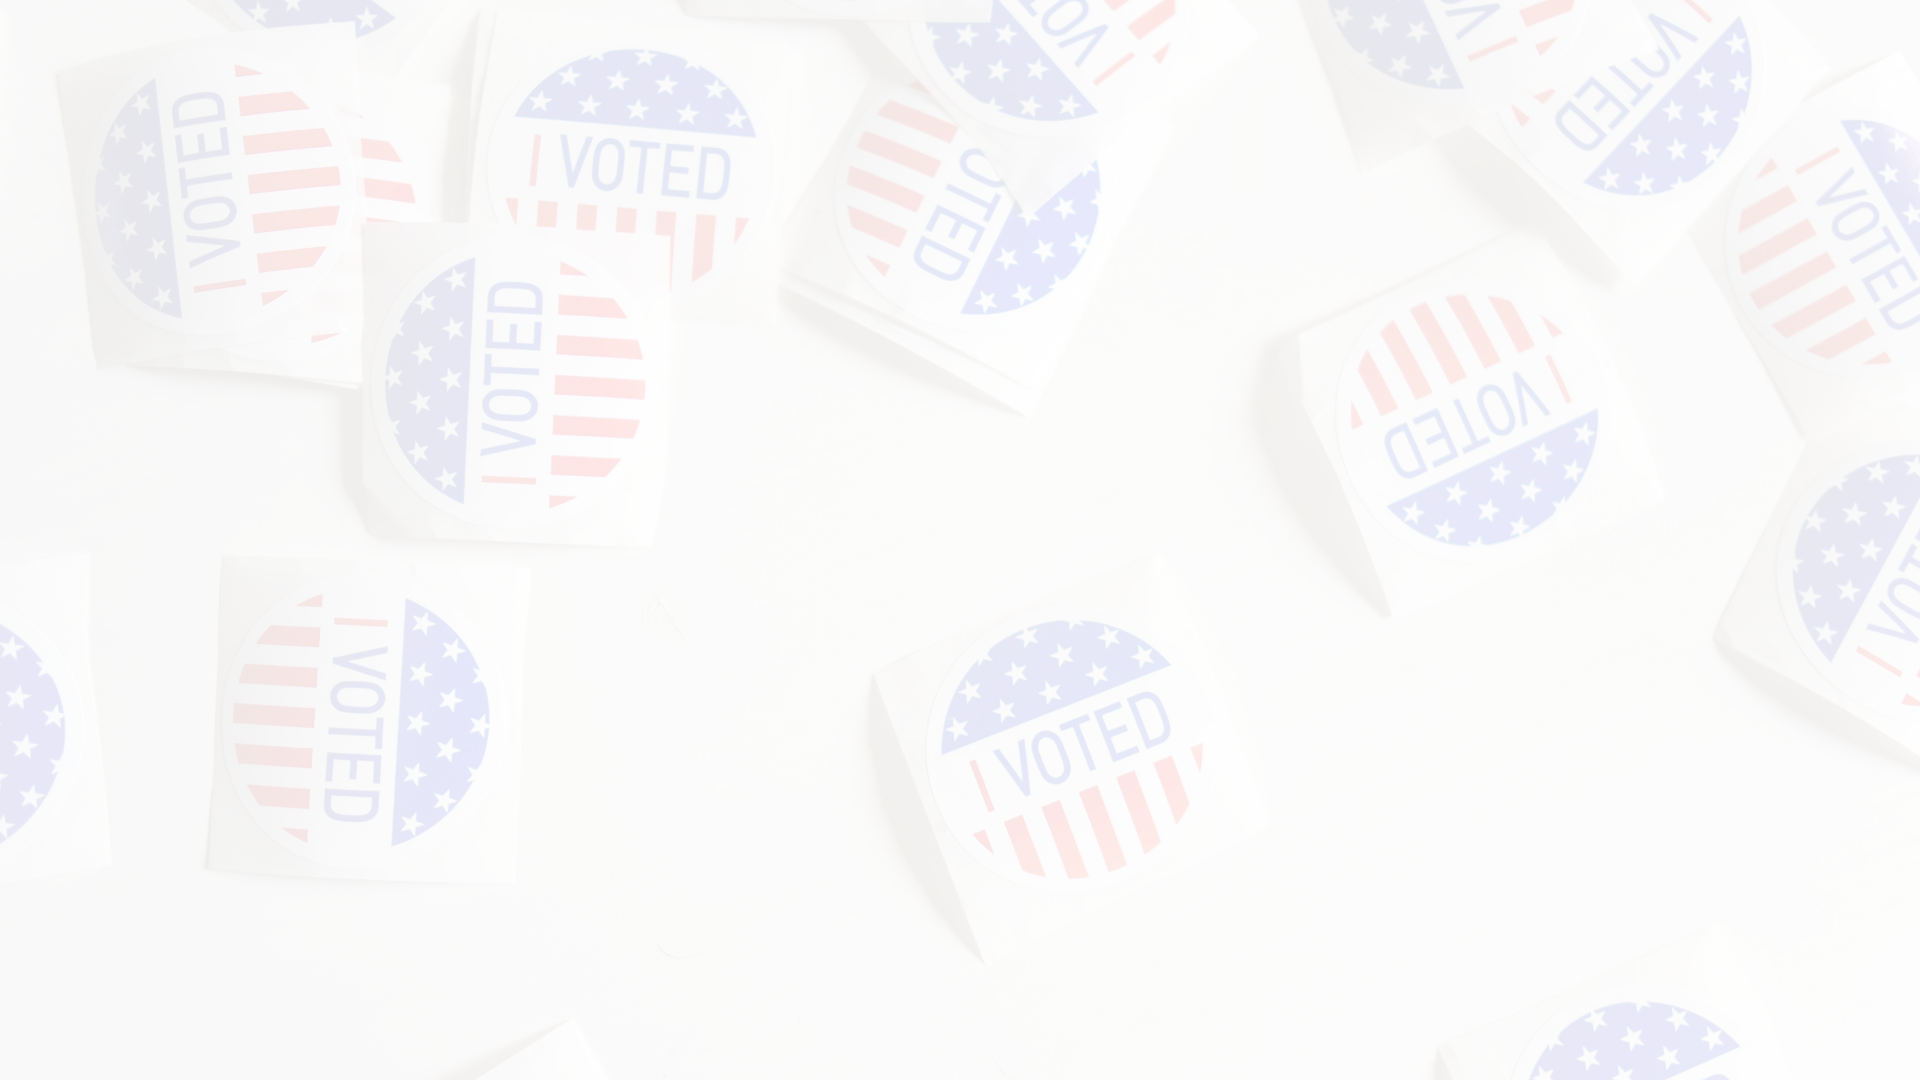 Red white and blue I Voted Stickers_NCBW Slider_1920 x 1080